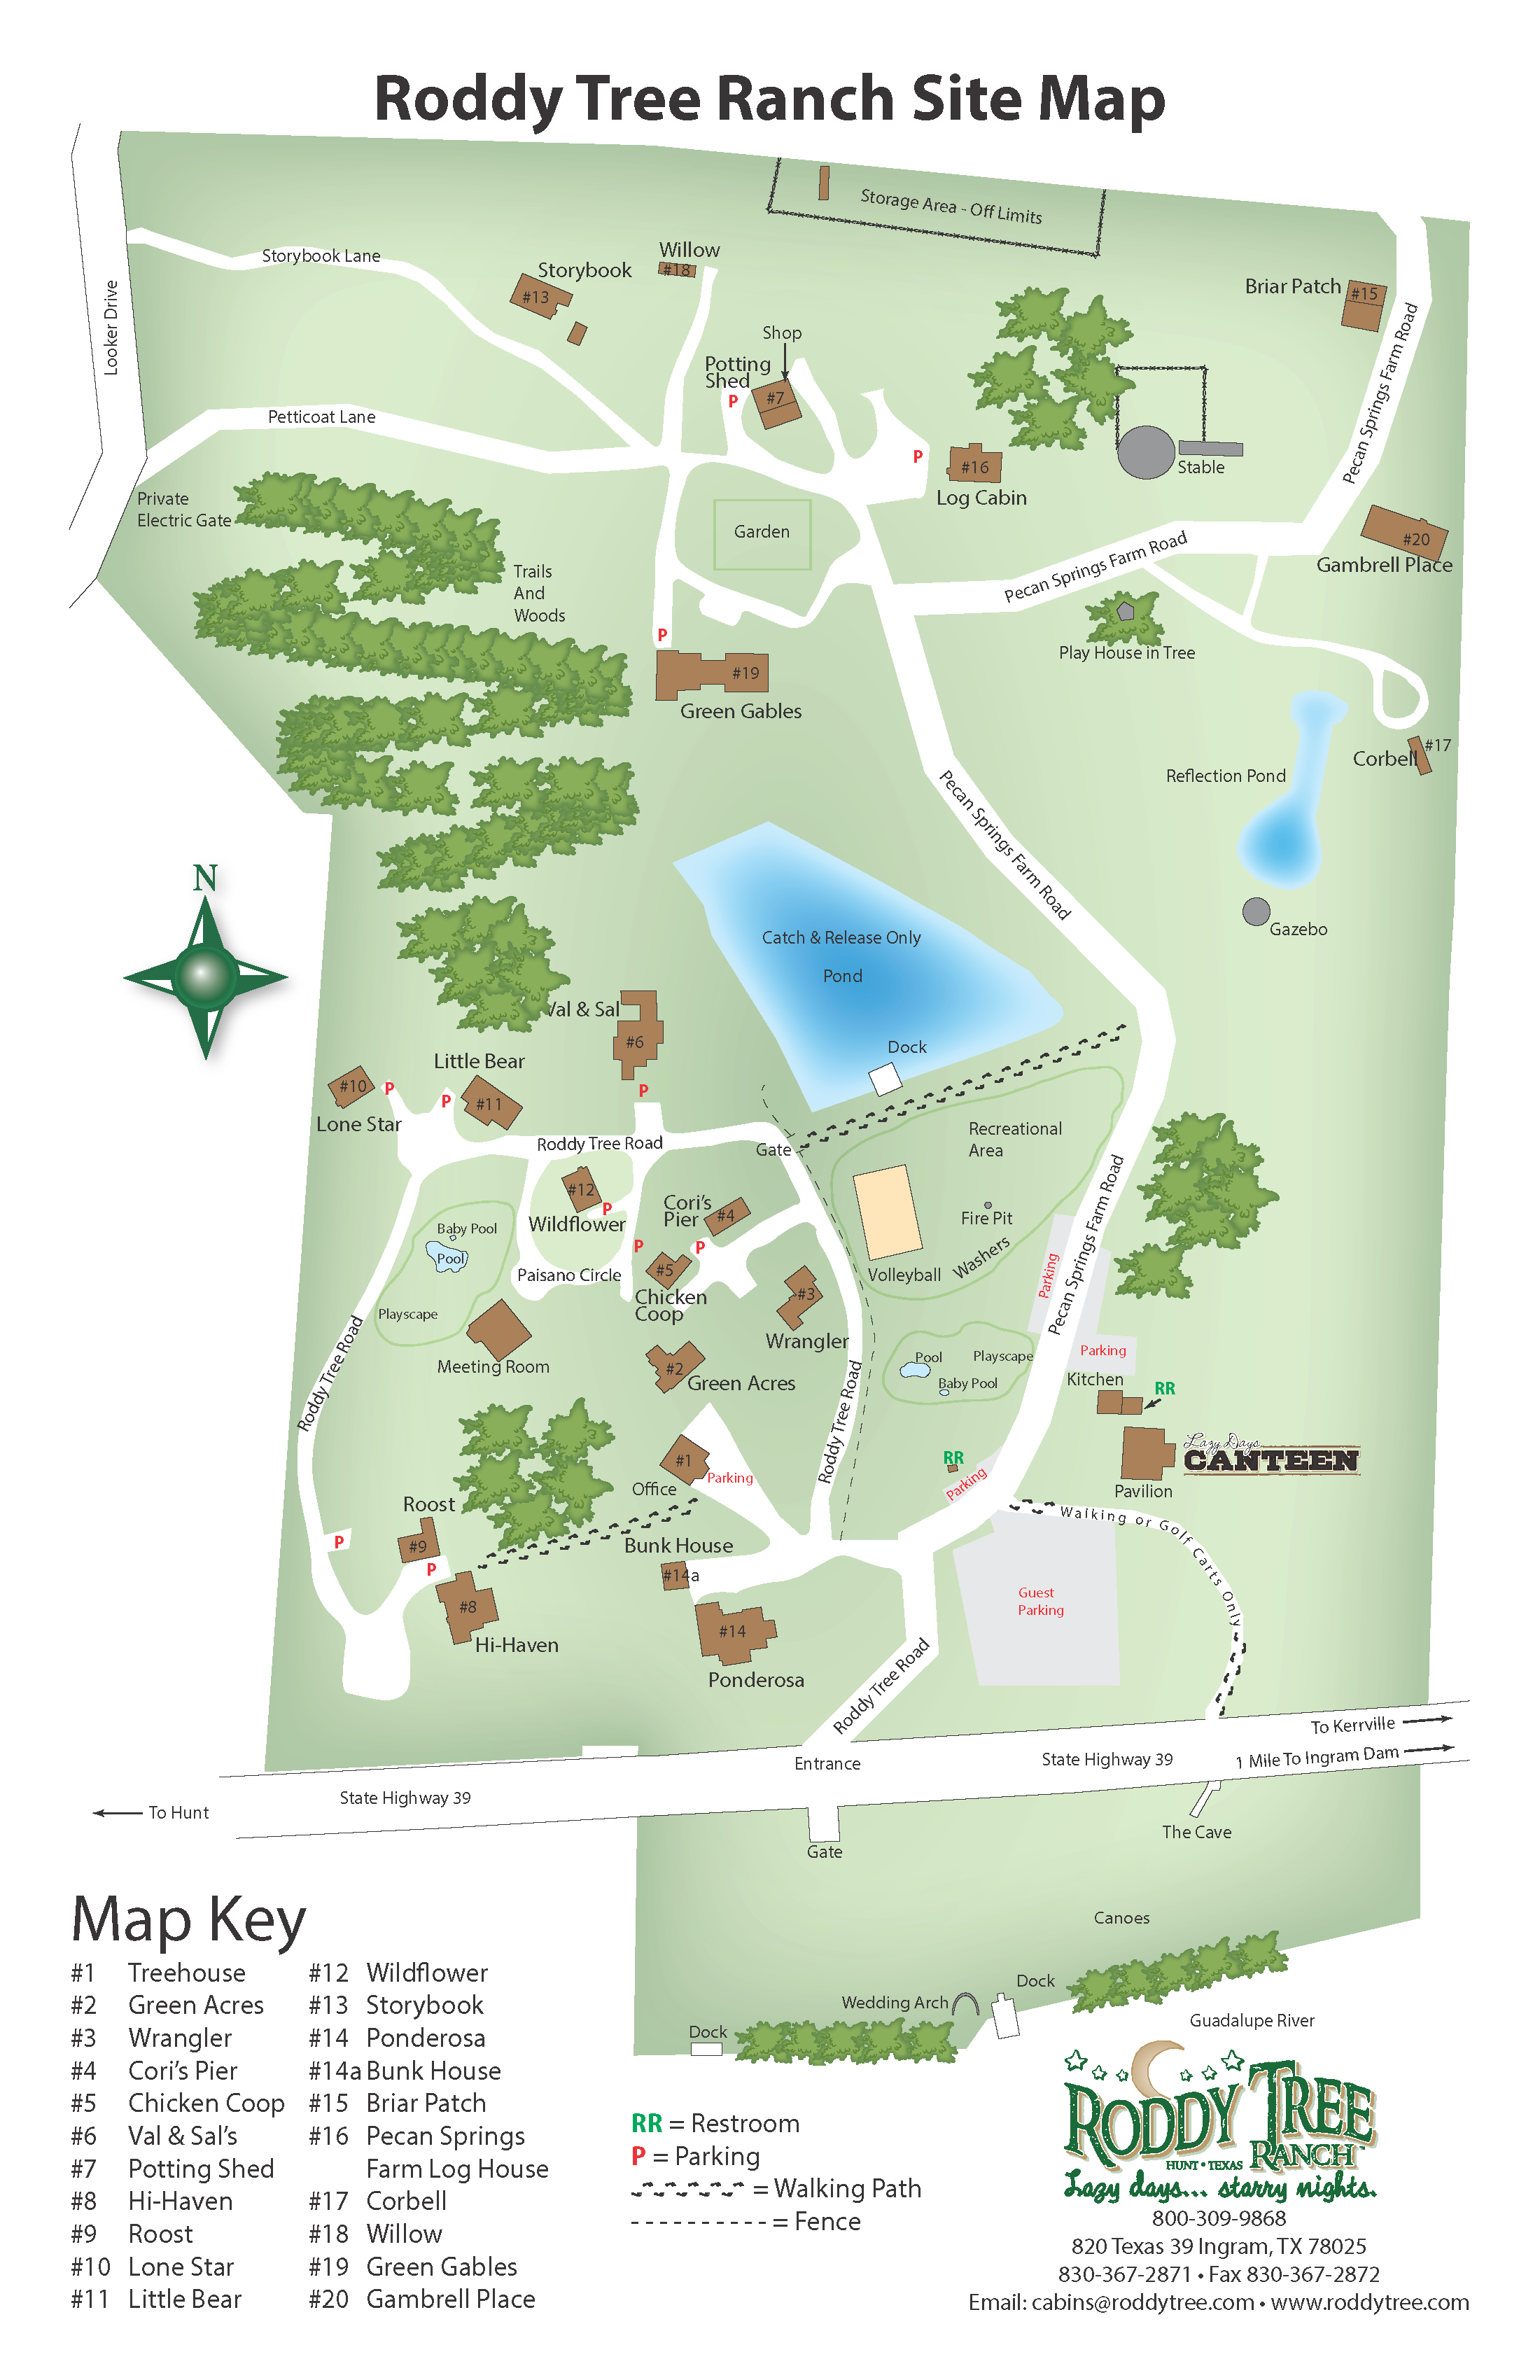 Roddy Tree Ranch Site Map